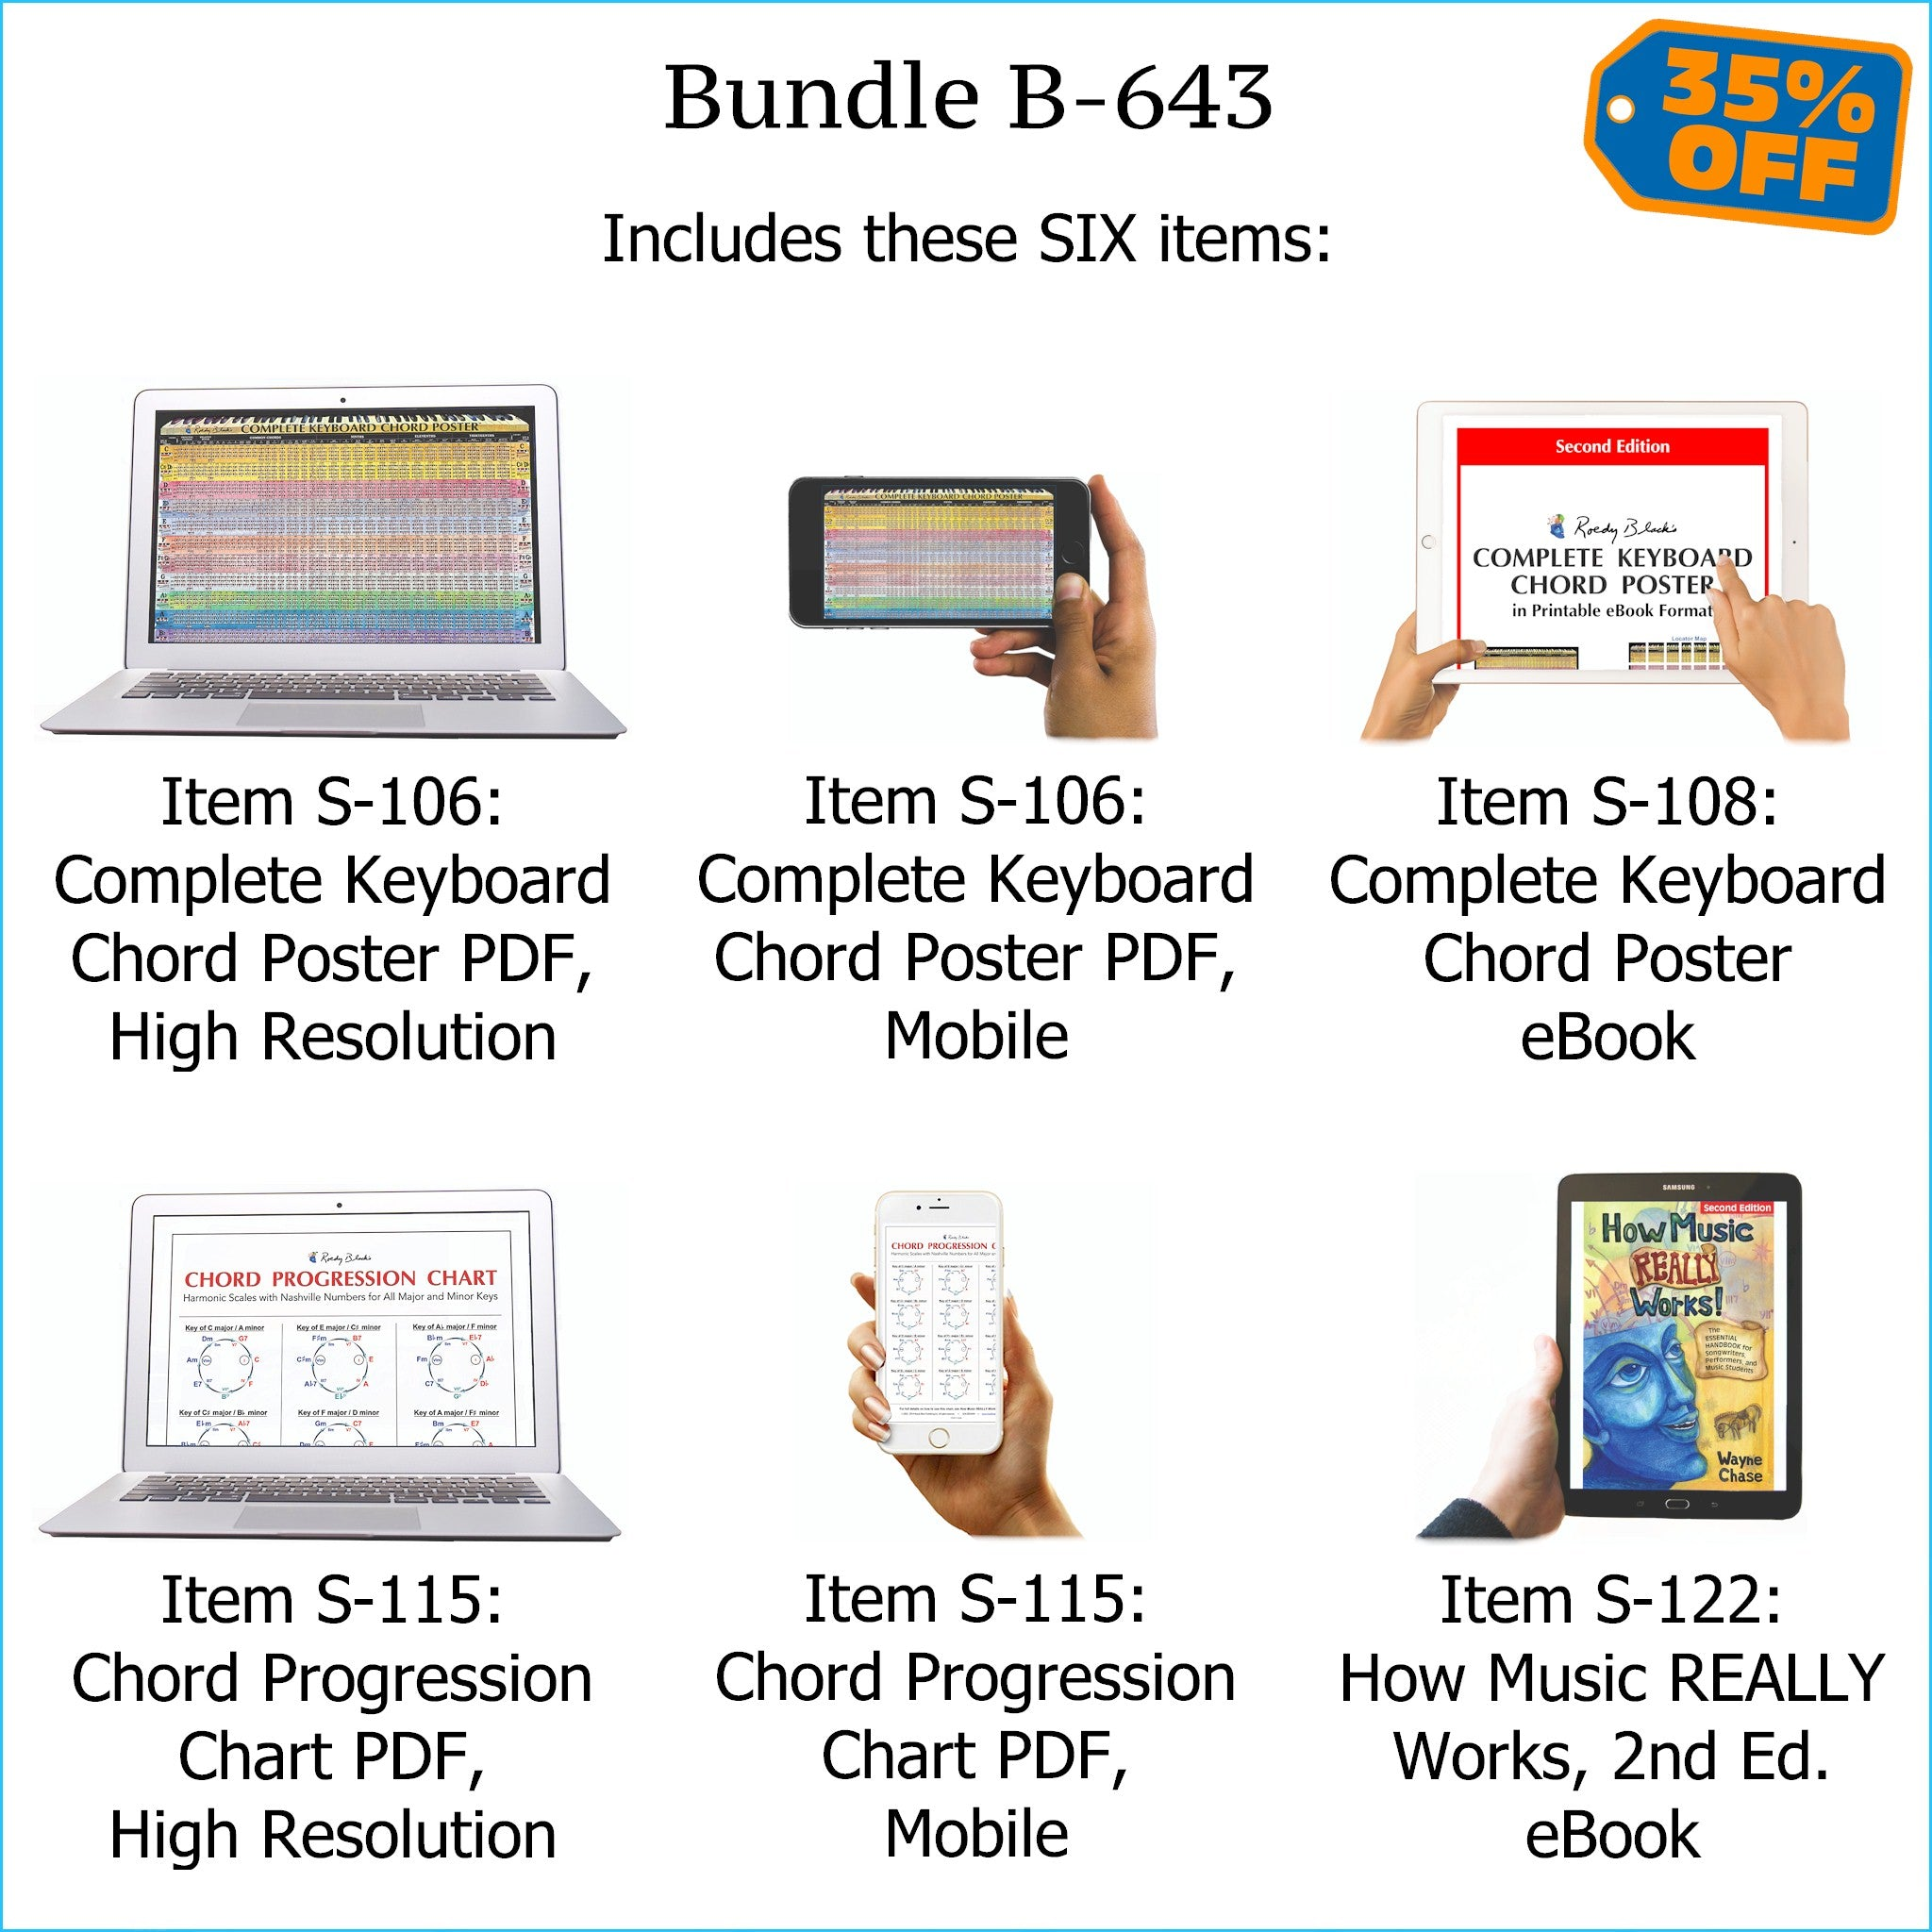 Bundle B-643: How Music REALLY Works! E-Book + Keyboard Chords, Chord Progressions - E-Posters and Printable E-Book. FREE Download Protection.